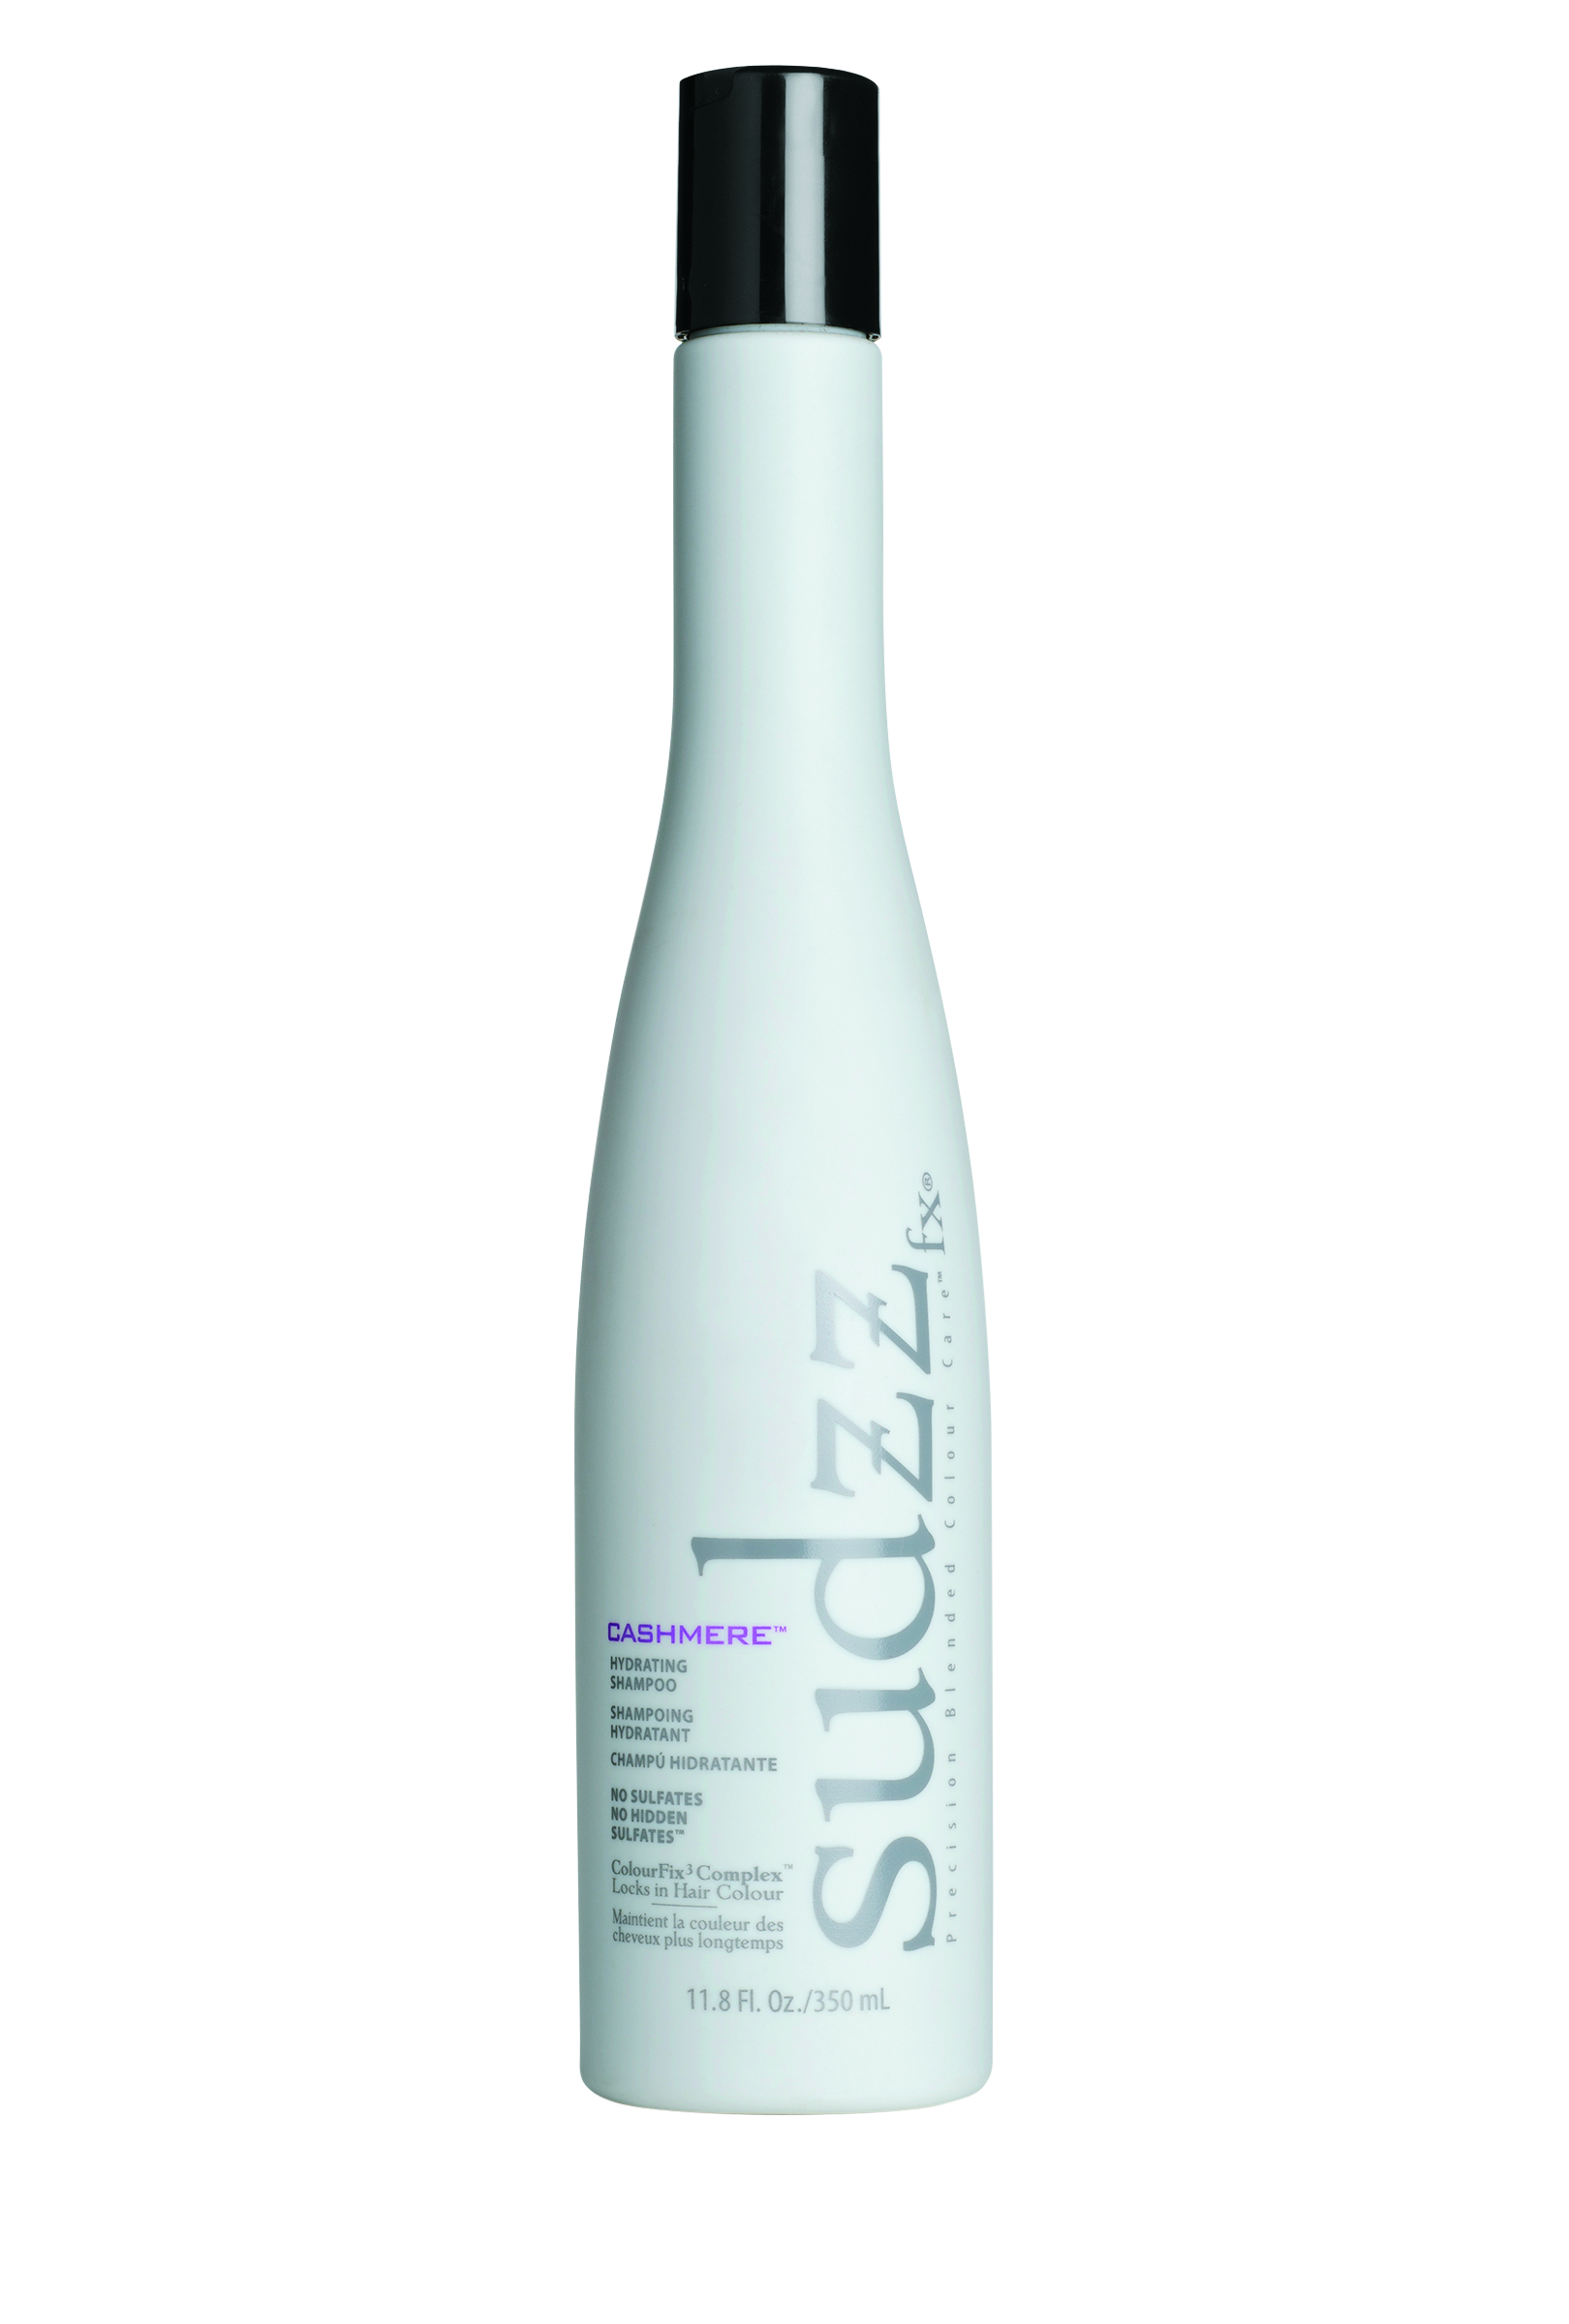 Sudzz fx  Cashmere Hydrating Shampoo delivers a strong dose of moisture while creating shine and silkiness, making even the driest of hair feel like soft, sophisticated cashmere.